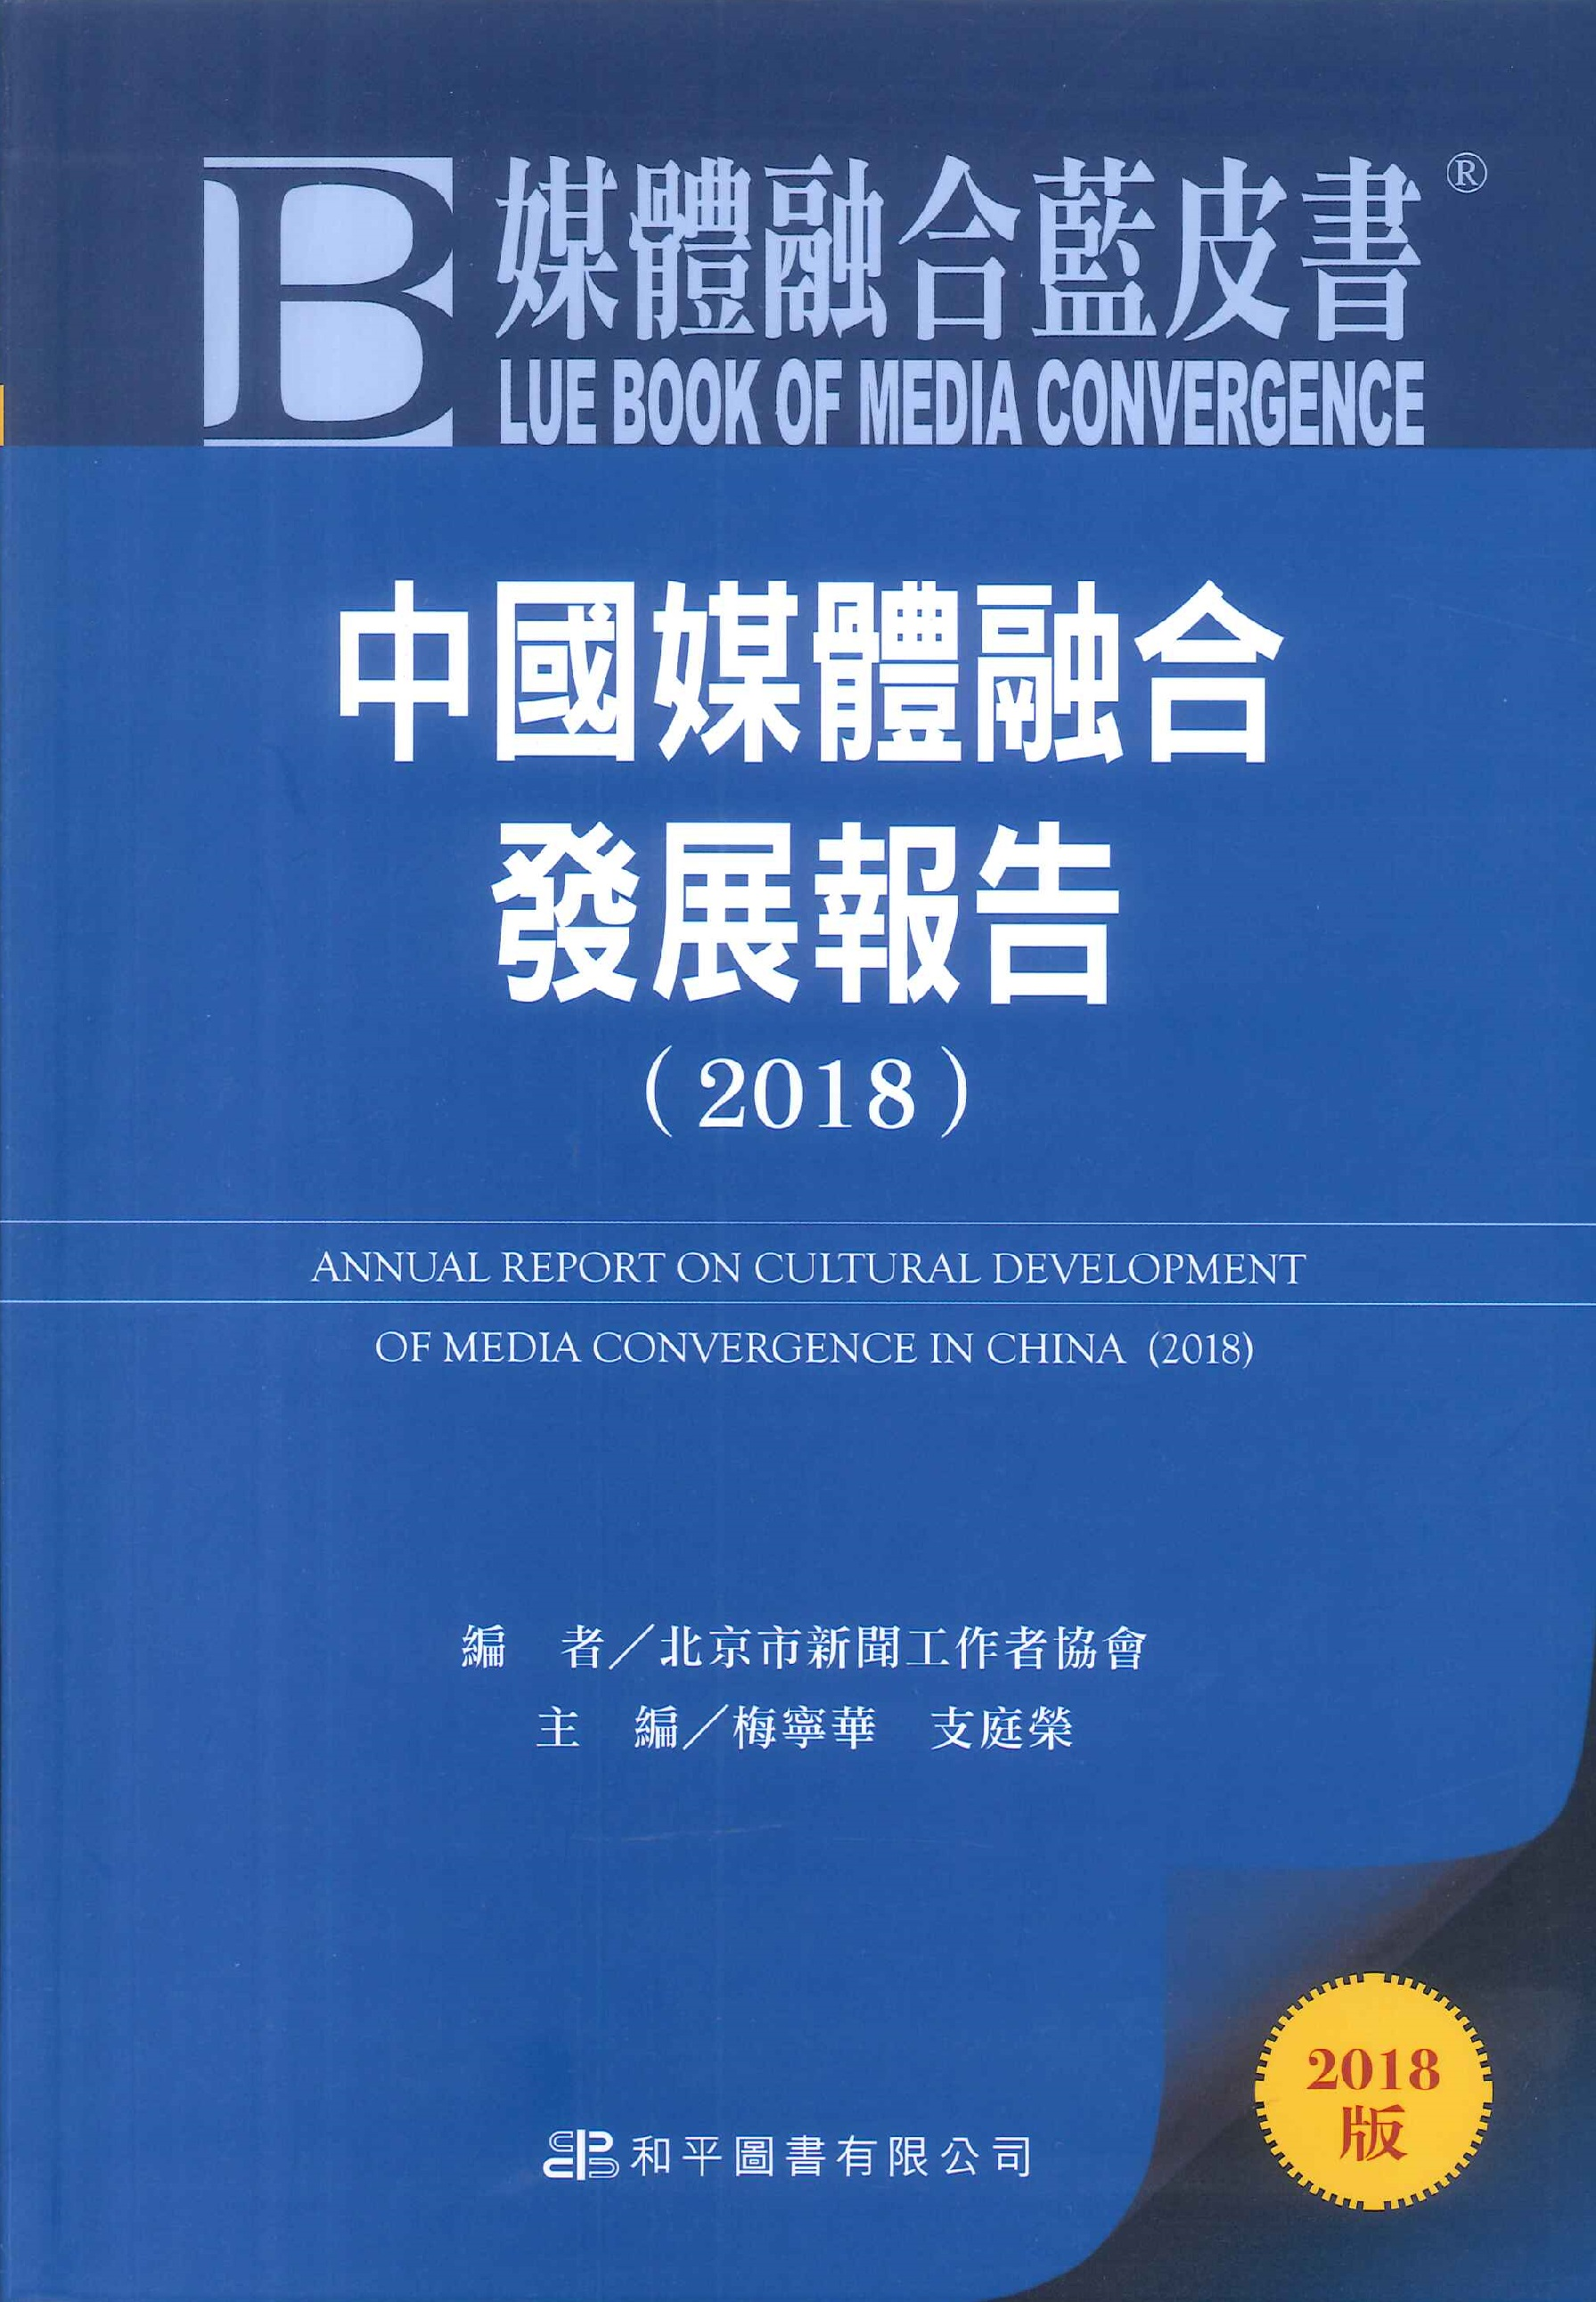 中國媒體融合發展報告.2018=Annual report on cultural development of media convergence in China